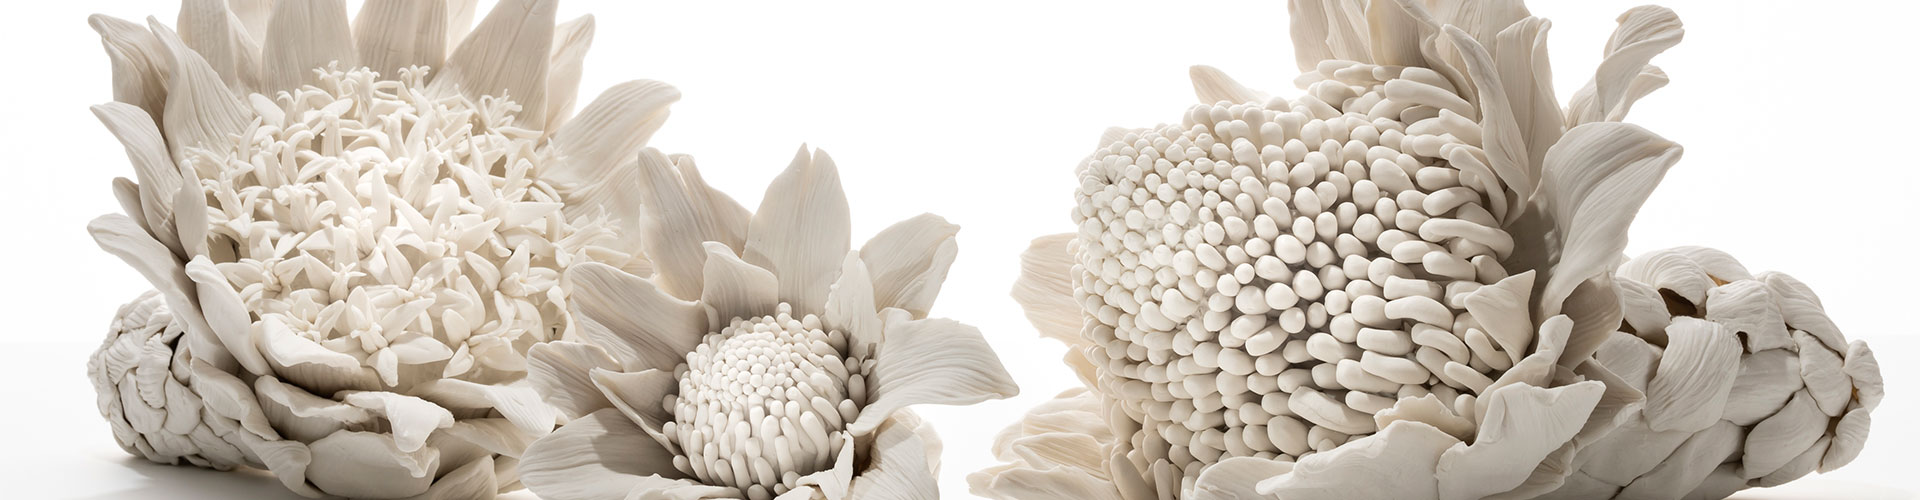 PORCELAIN FLOWERS Q AND A WITH MICHELLE PERRETT AND GREG STONEHOUSE